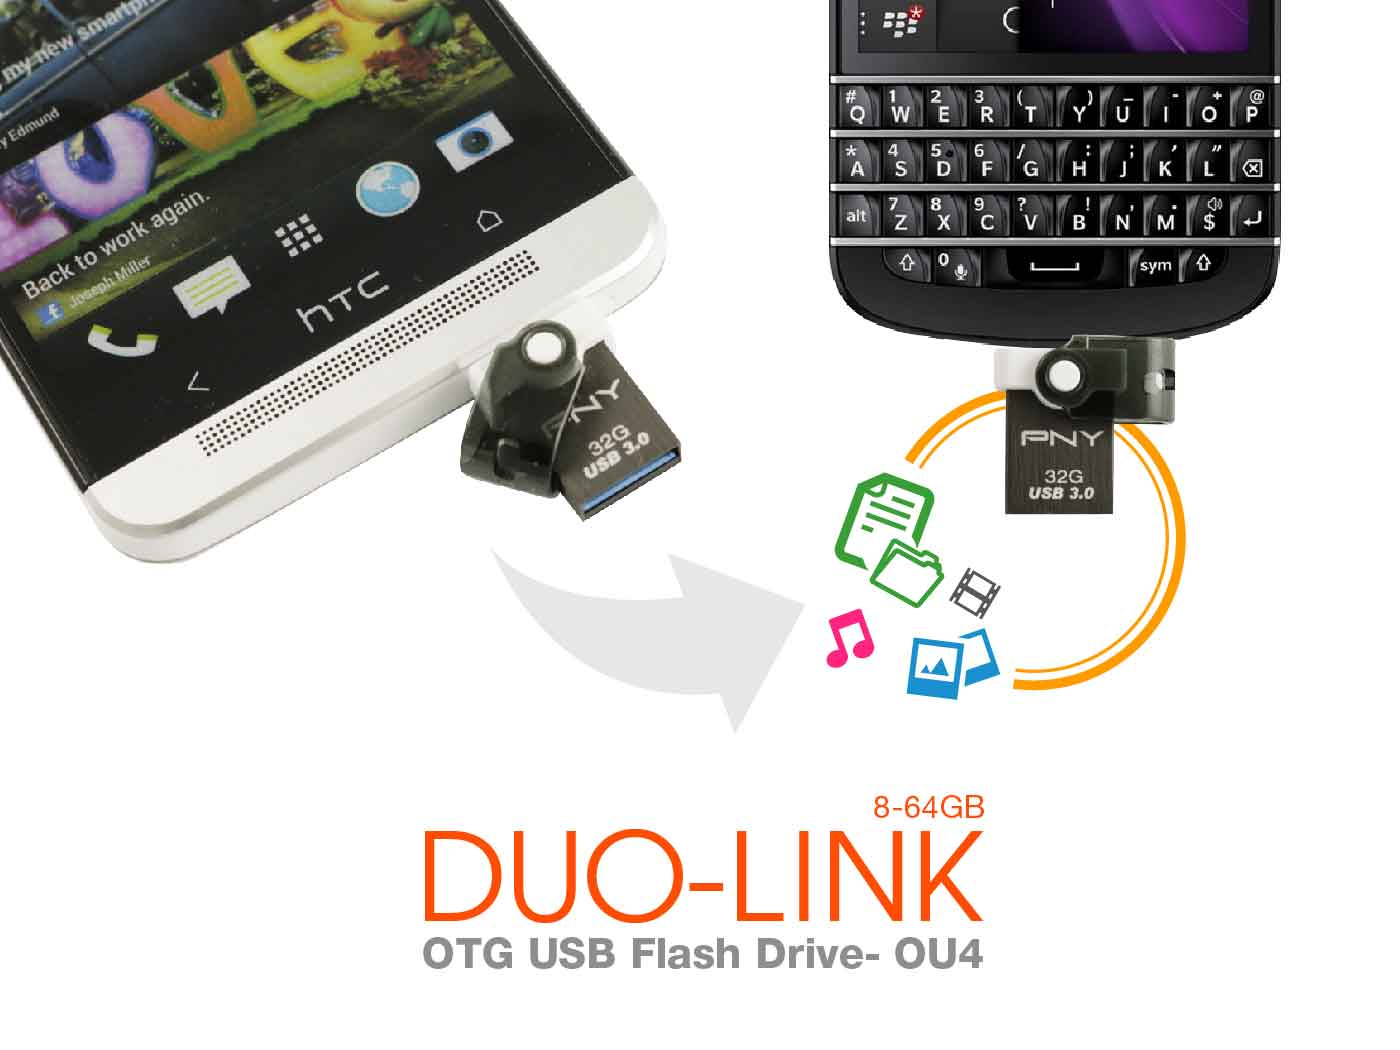 PNY 2-in-1 DUO-LINK OU4 OTG USB 3.0 Flash Drive